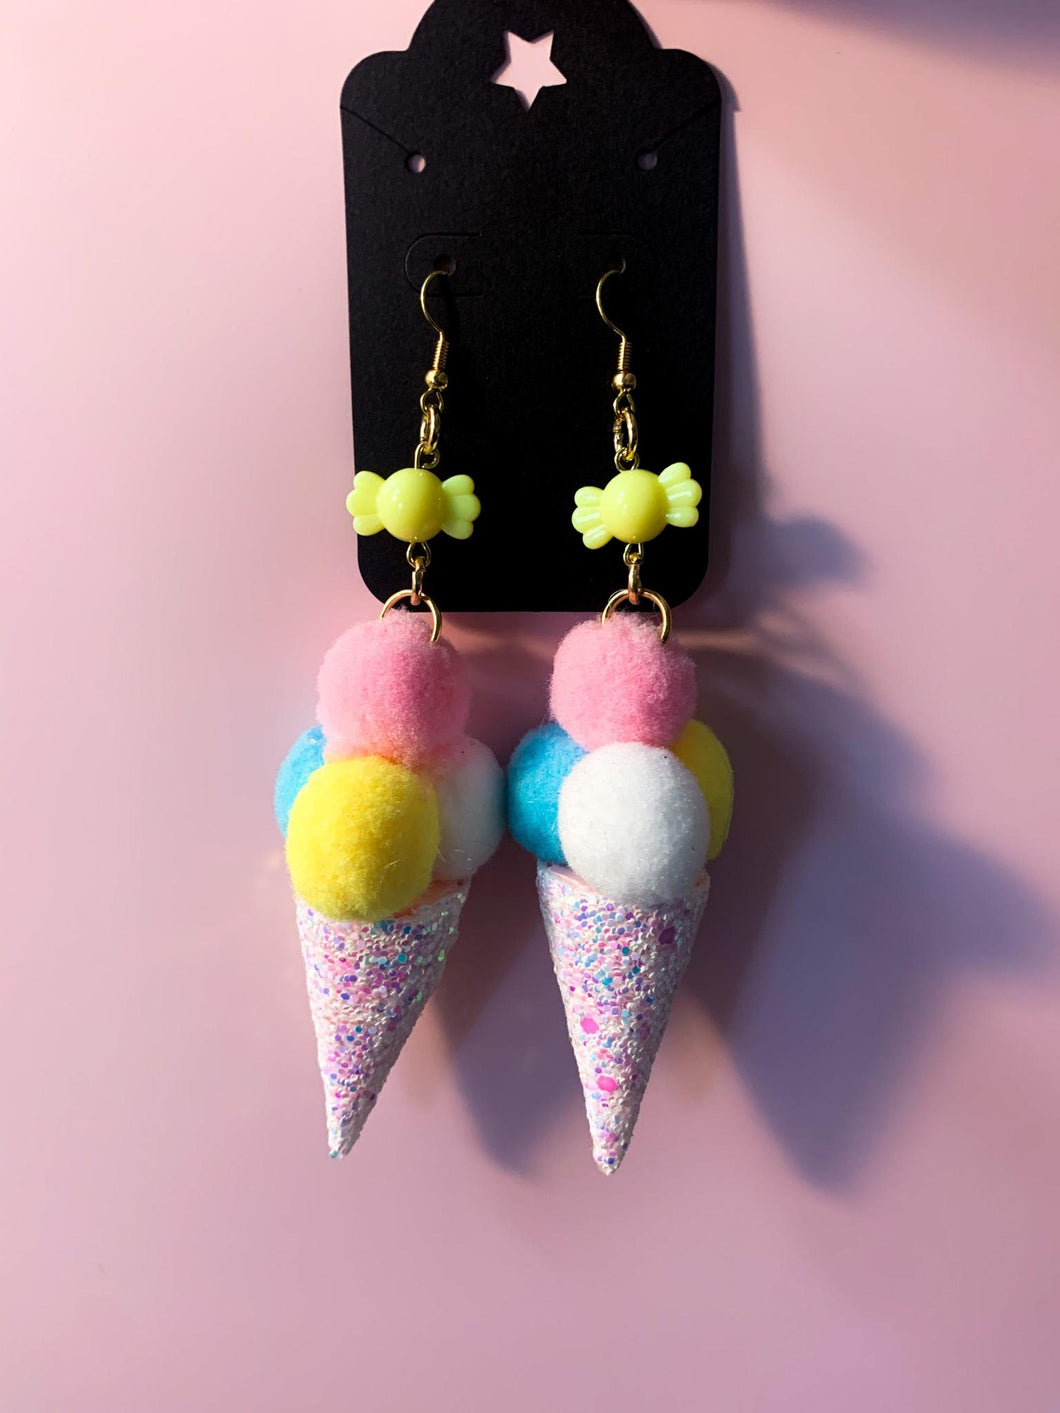 Pom Pom Kawaii Ice Cream Earrings